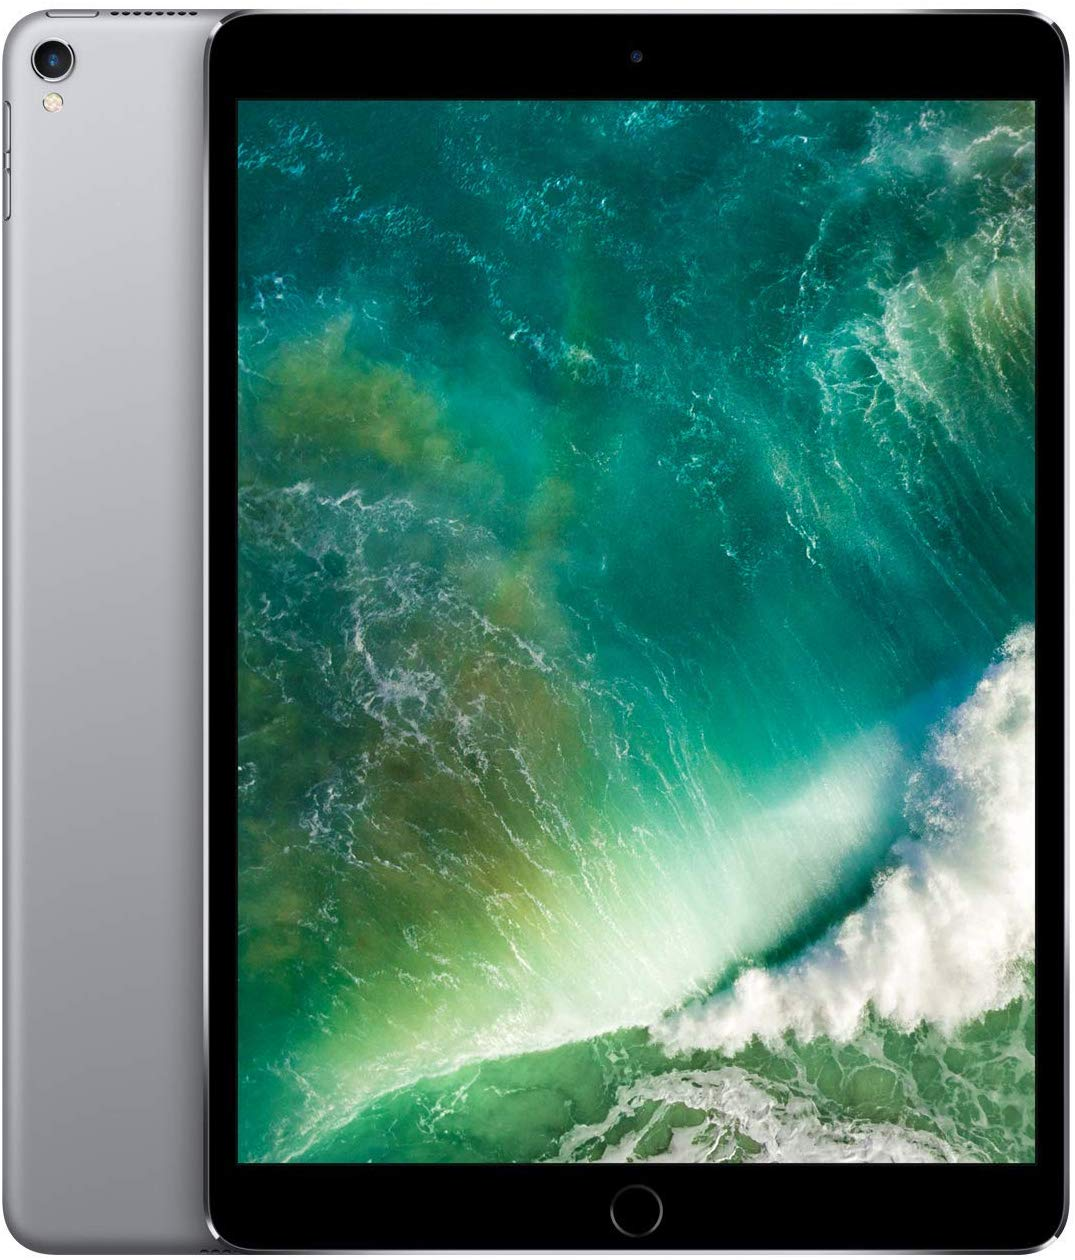 Apple iPad Pro (10.5-inch, Wi-Fi, 512 GB) – Space Grey (Previous Model) for £498.99 on Amazon